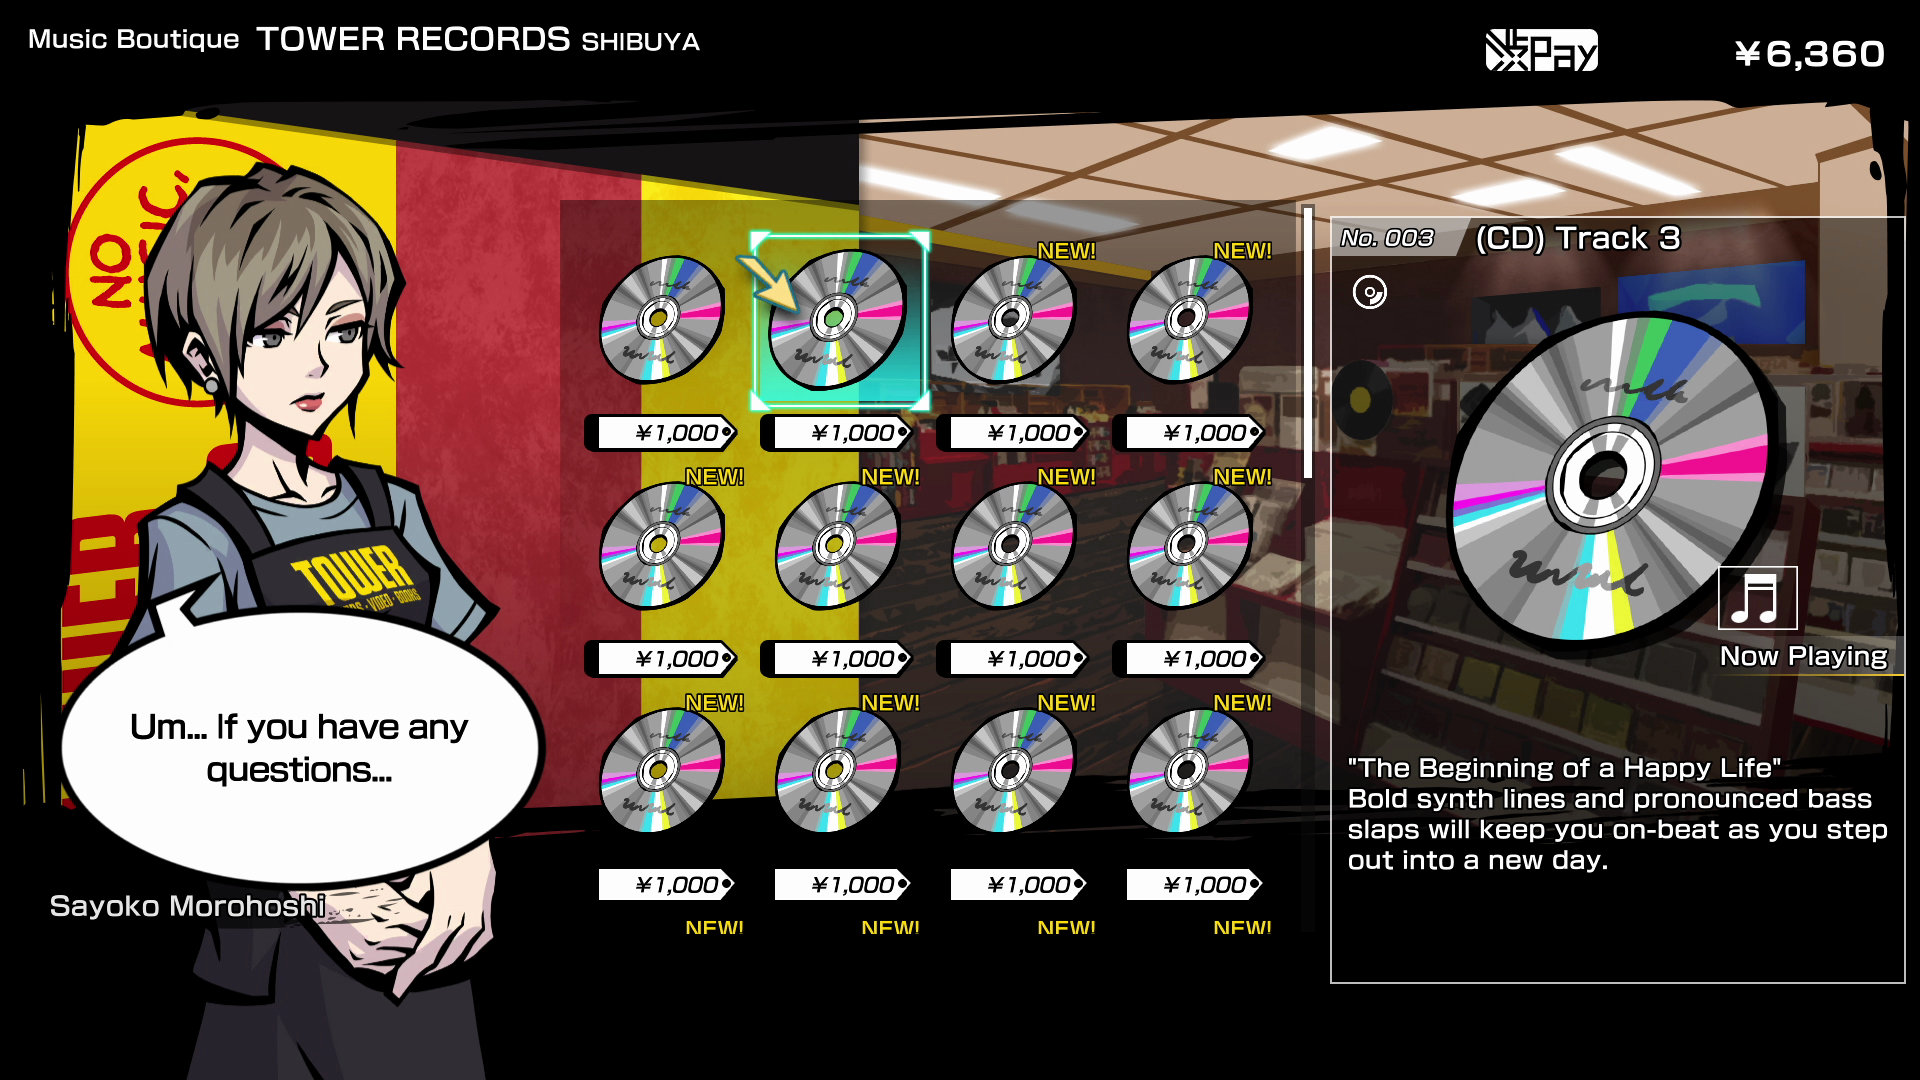 Tune into your favorite tracks by purchasing CDs from the Music Boutique in Neo: The World Ends With You.